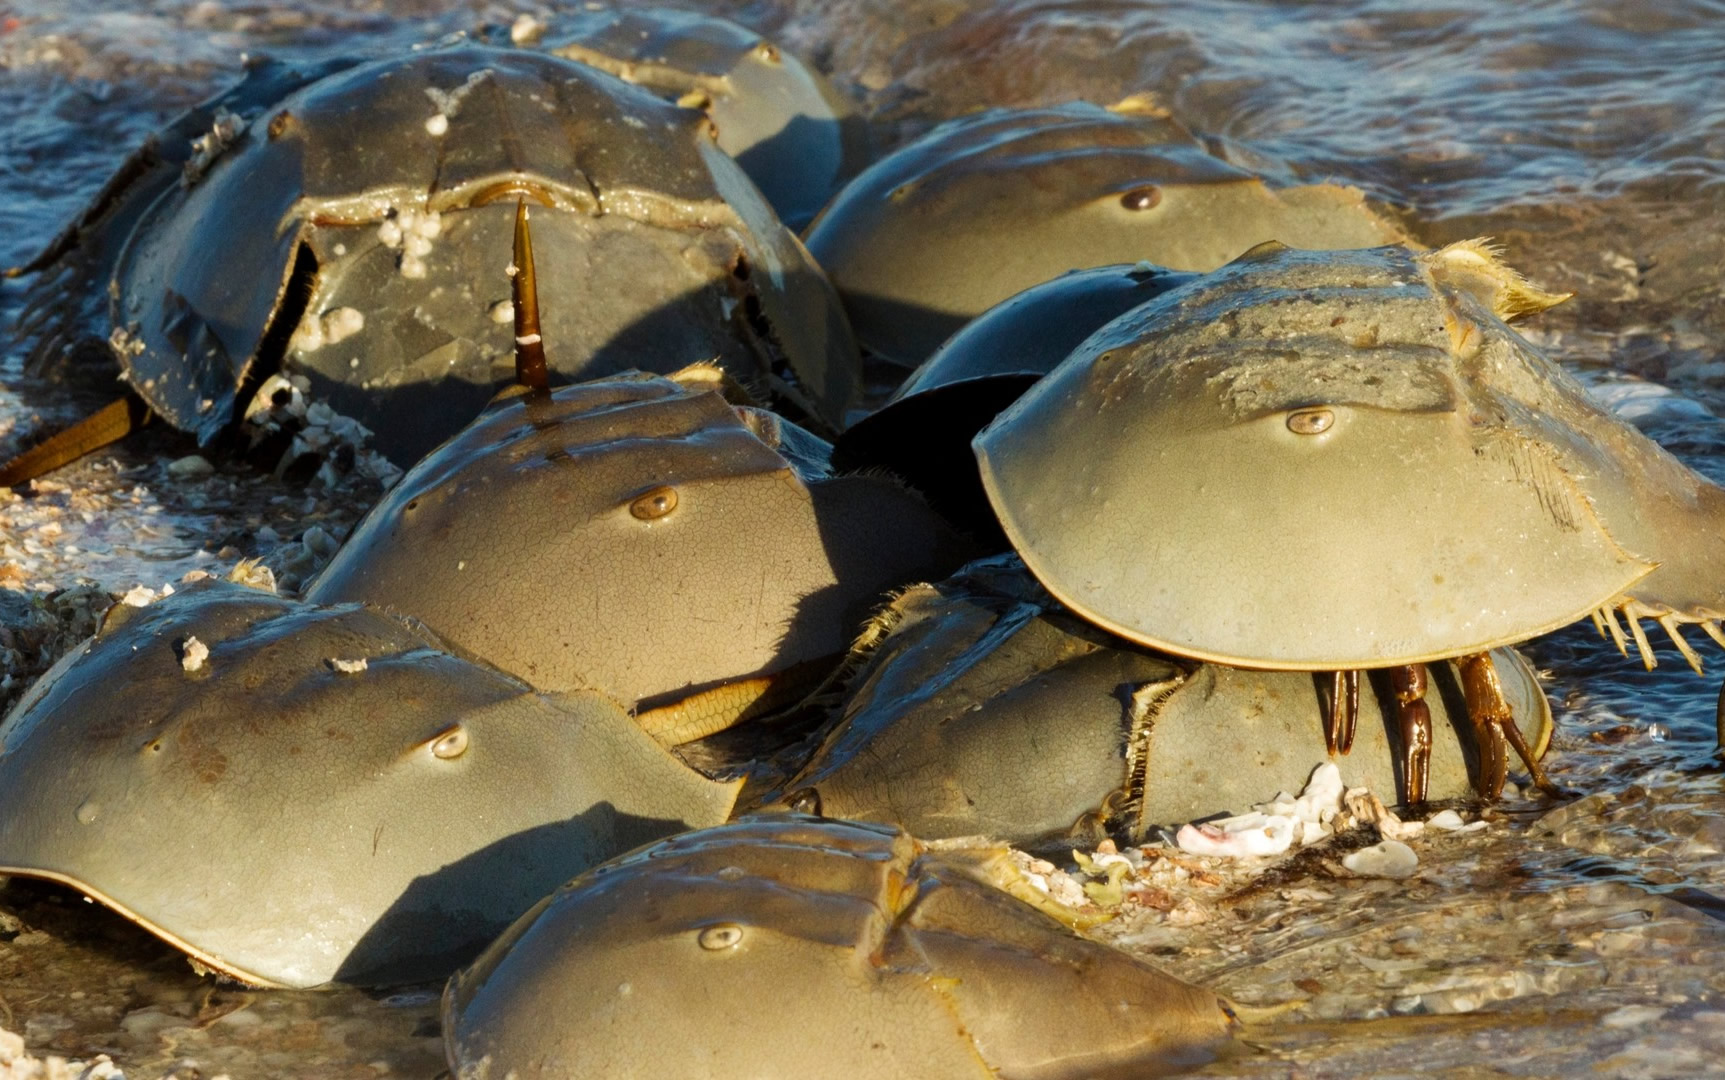 Not only do horseshoe crabs play a role in sterility & endotoxin testing – they are also helping develop a Corona virus vaccine too!